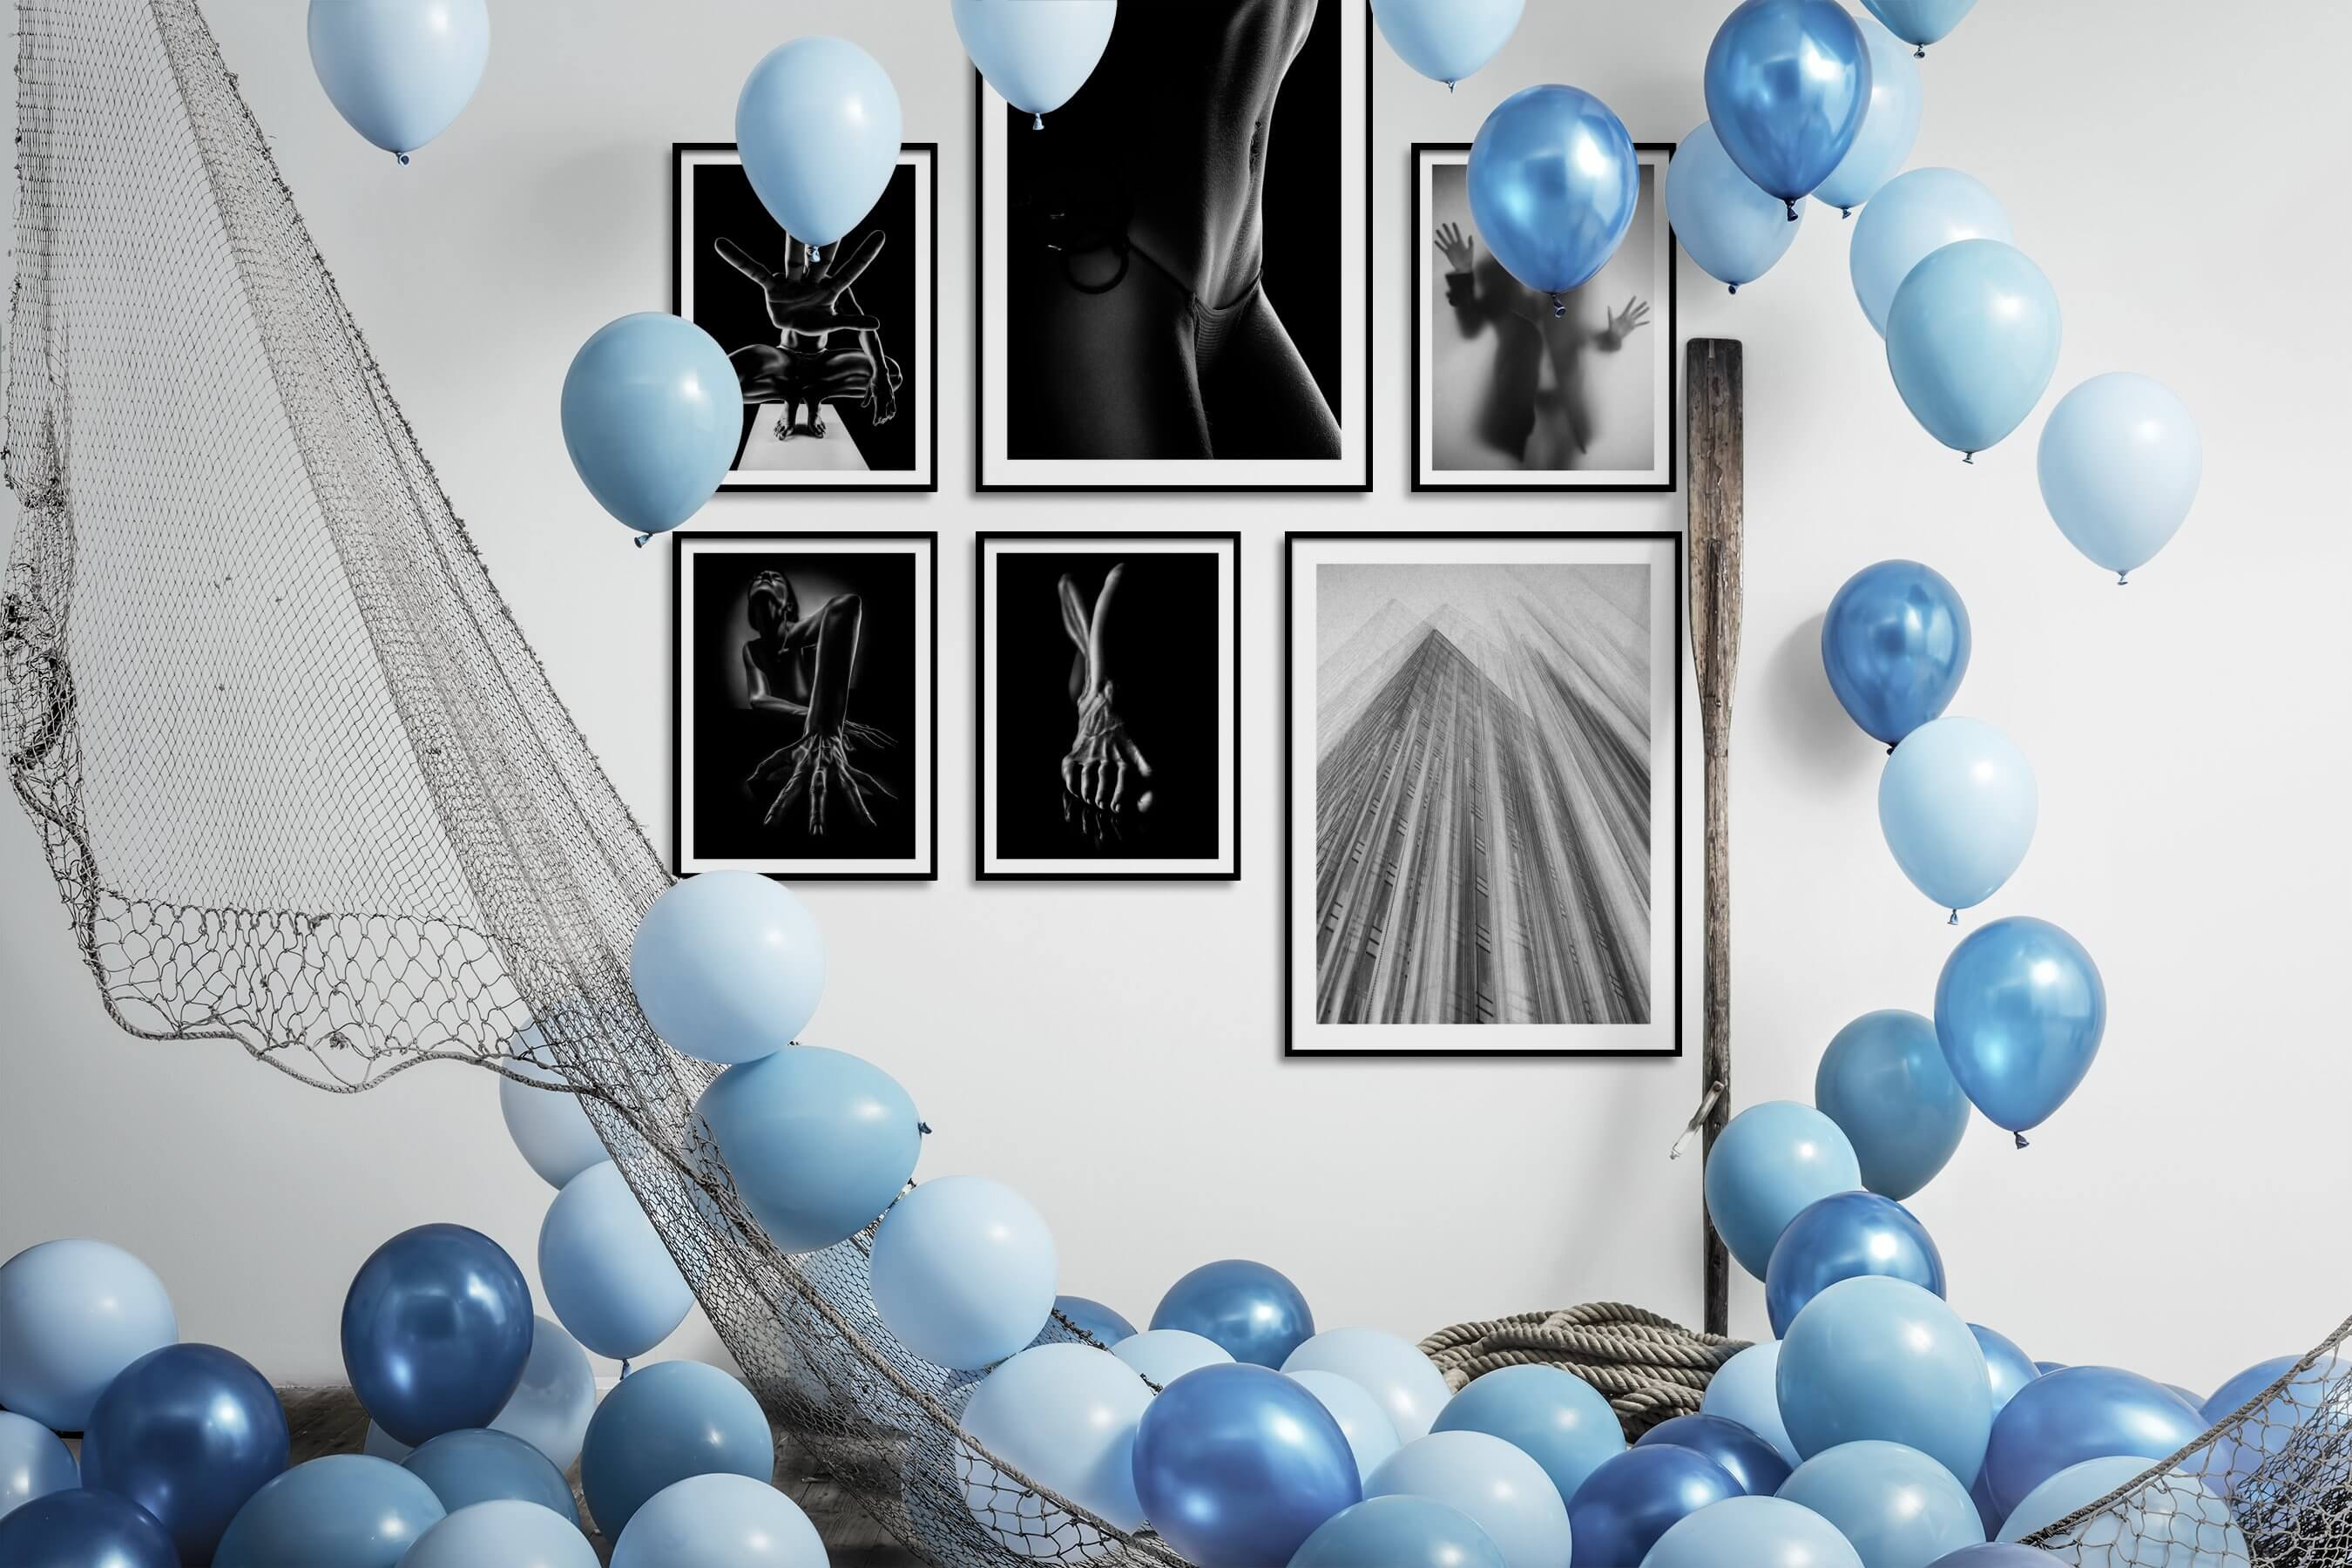 Gallery wall idea with six framed pictures arranged on a wall depicting Fashion & Beauty, Black & White, For the Minimalist, Artsy, For the Maximalist, and City Life